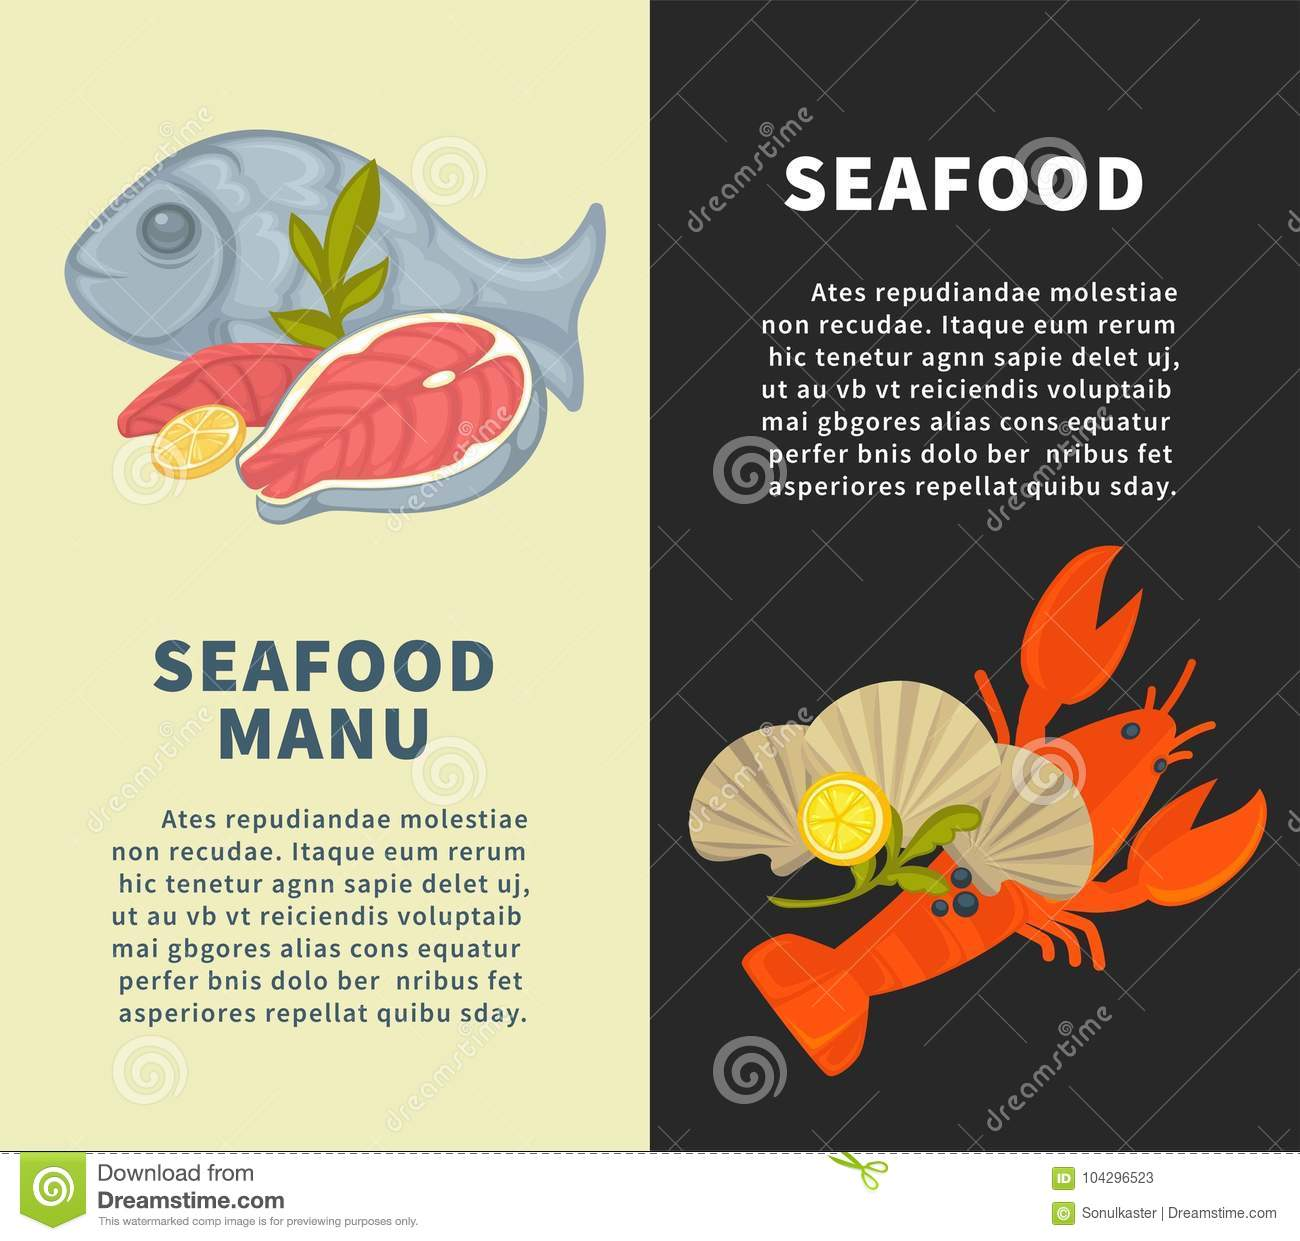 Seafood Restaurant Menu Vector Design Template For Fresh Fish Sea Food Stock Vector Illustration Of Fish Lobster 104296523